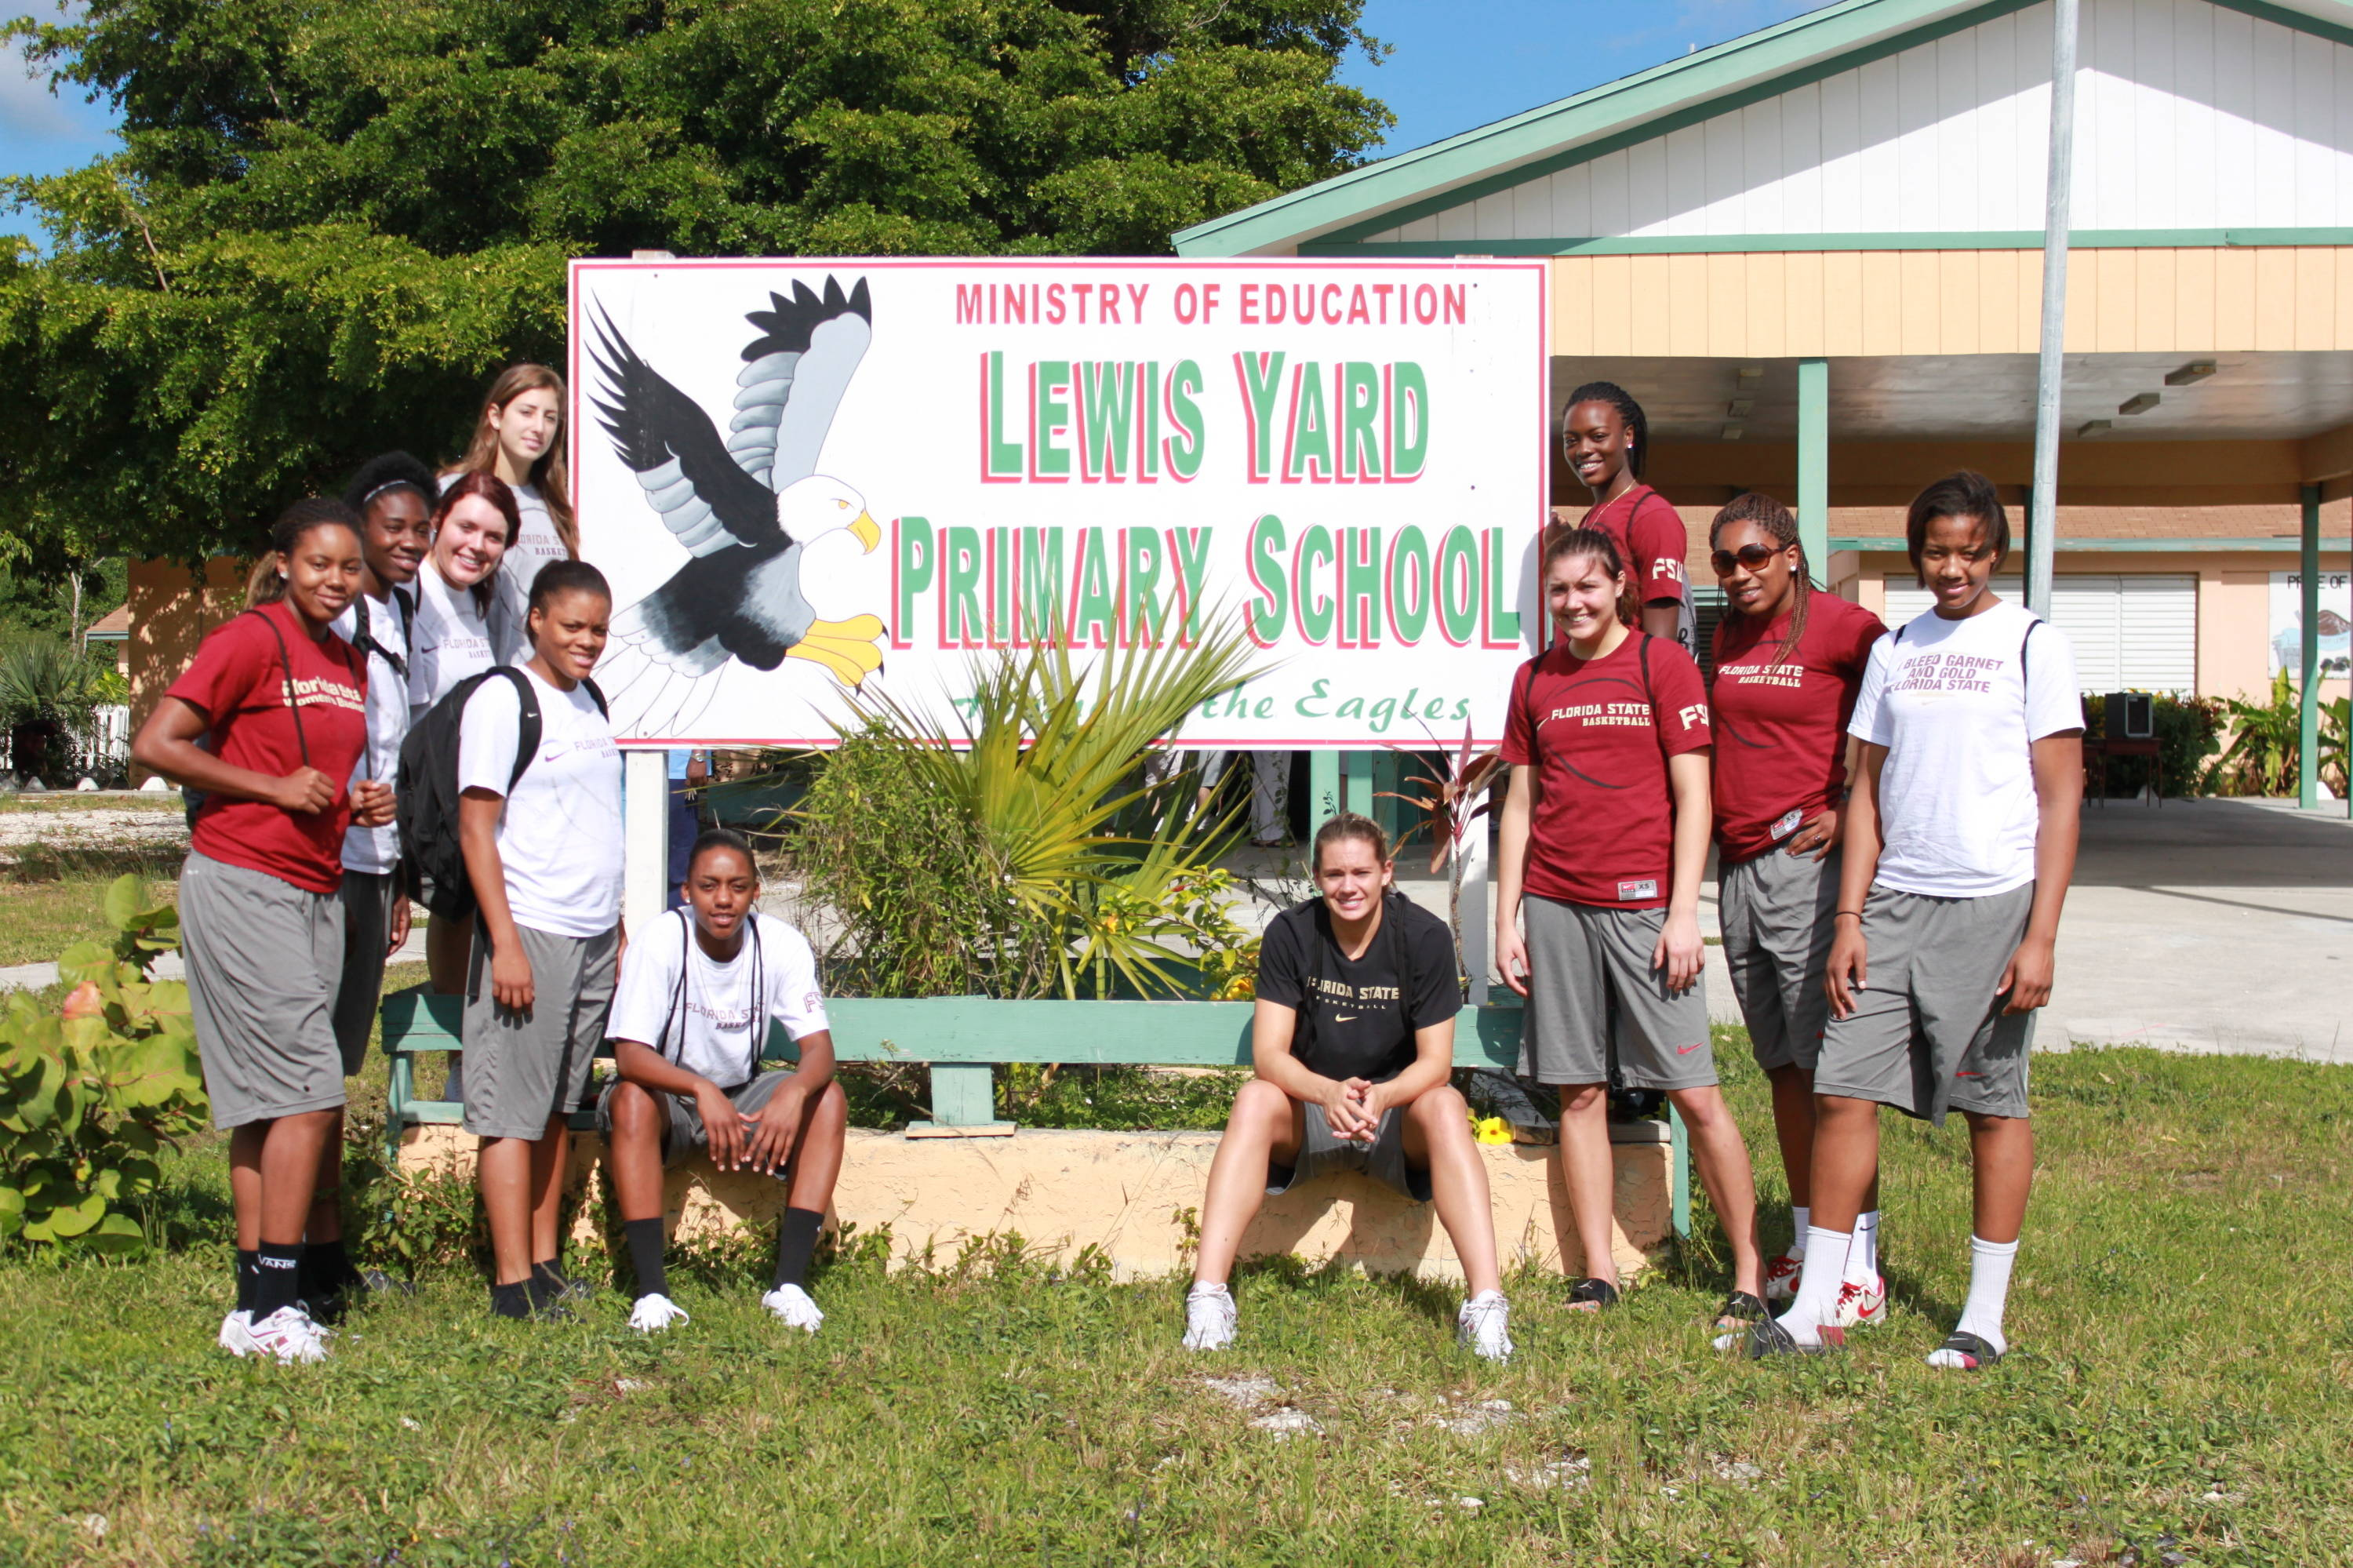 FSU players pose in front of the Lewis Yard Primary School.